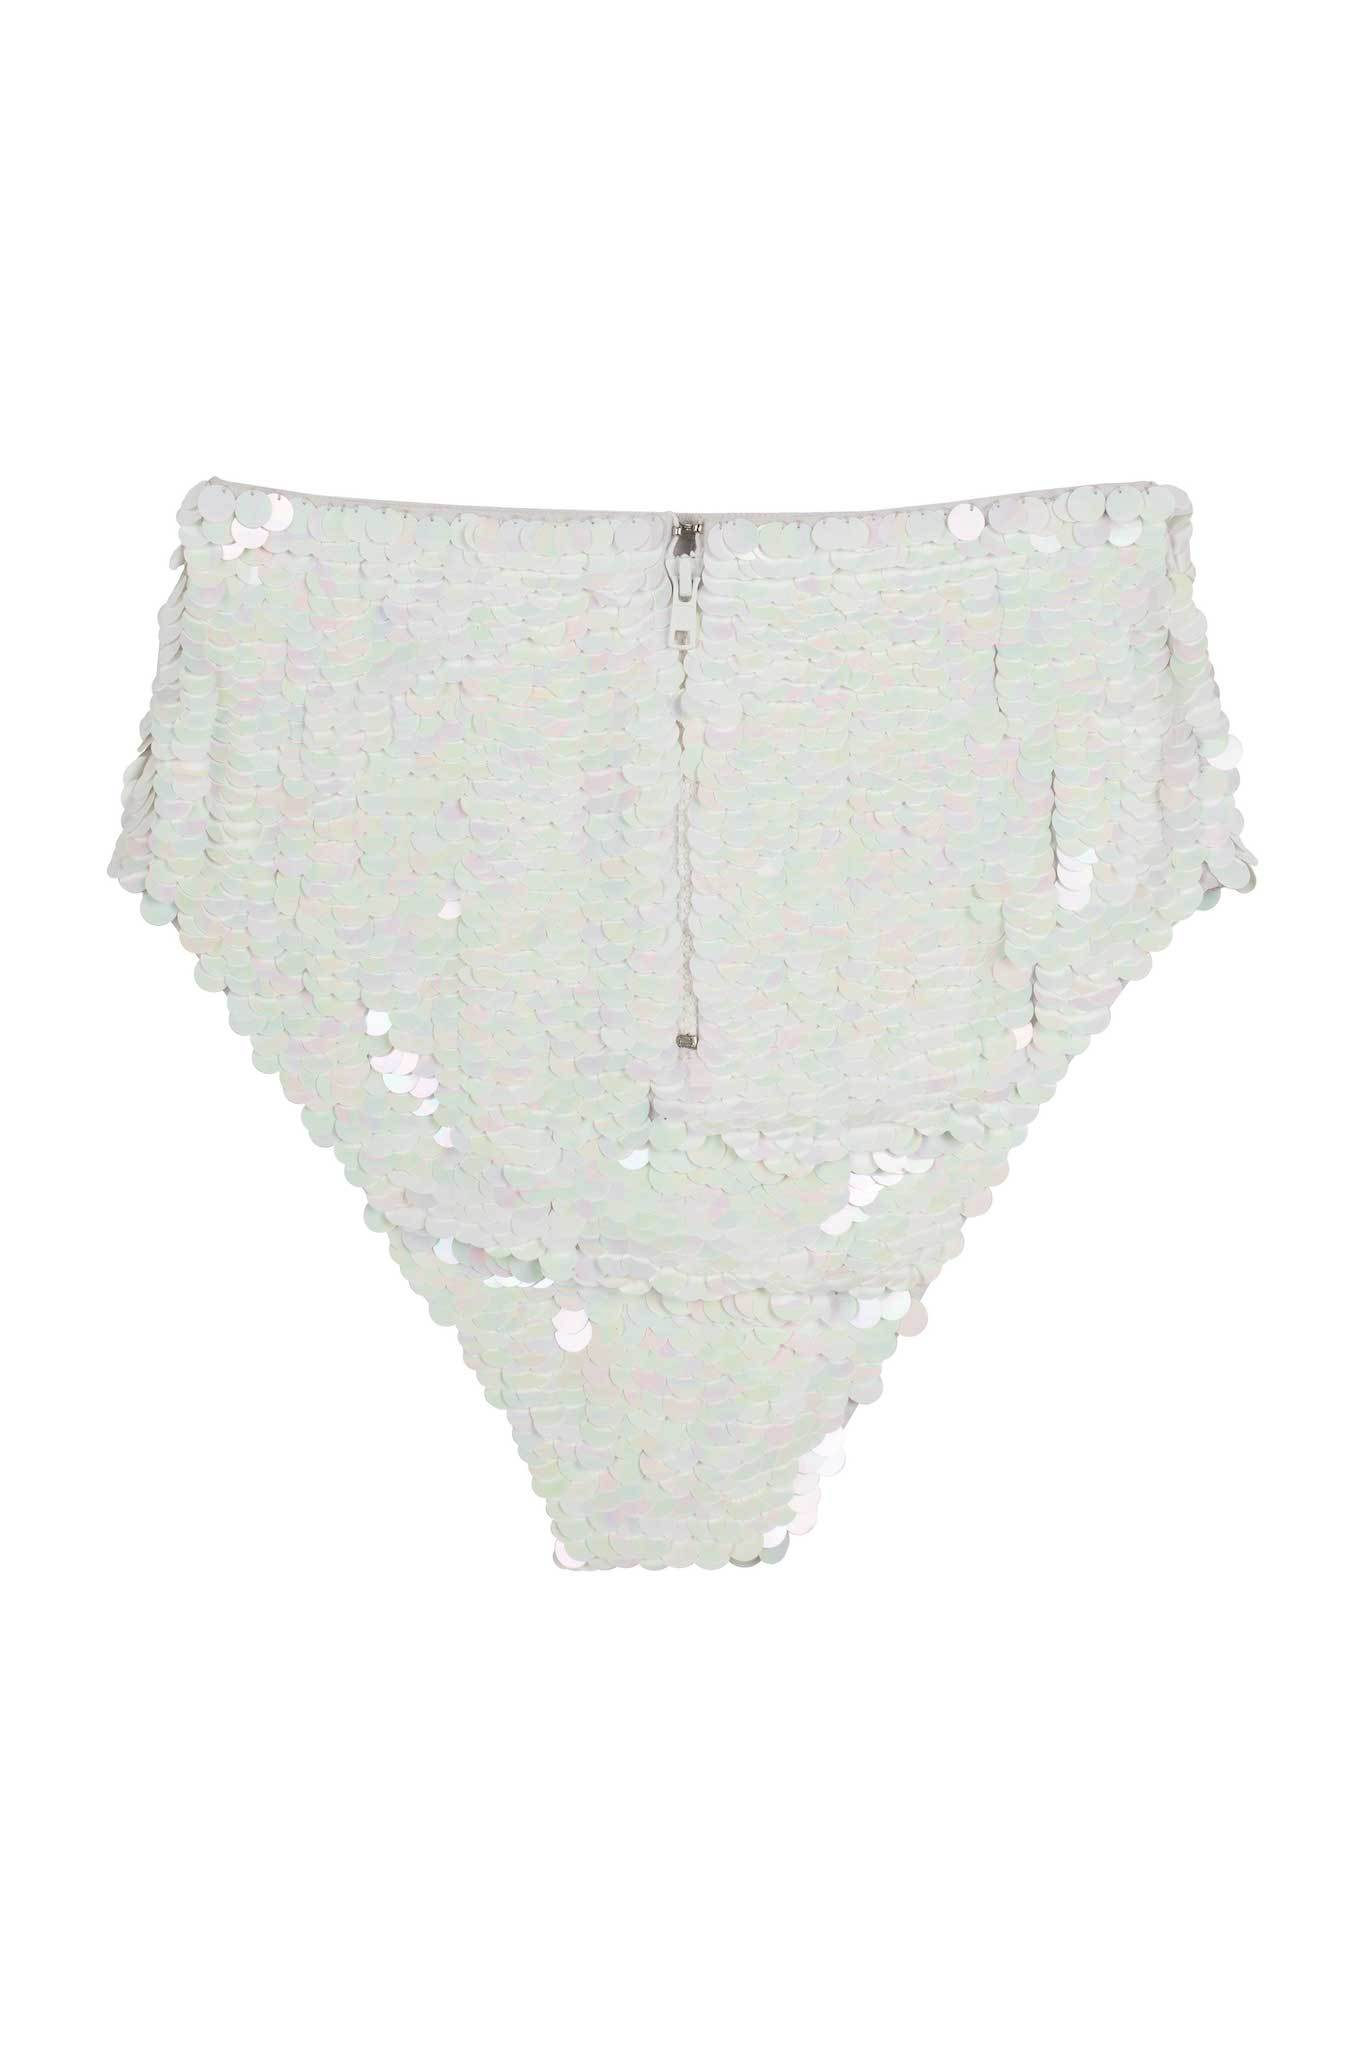 White Iridescent Sequin Undies